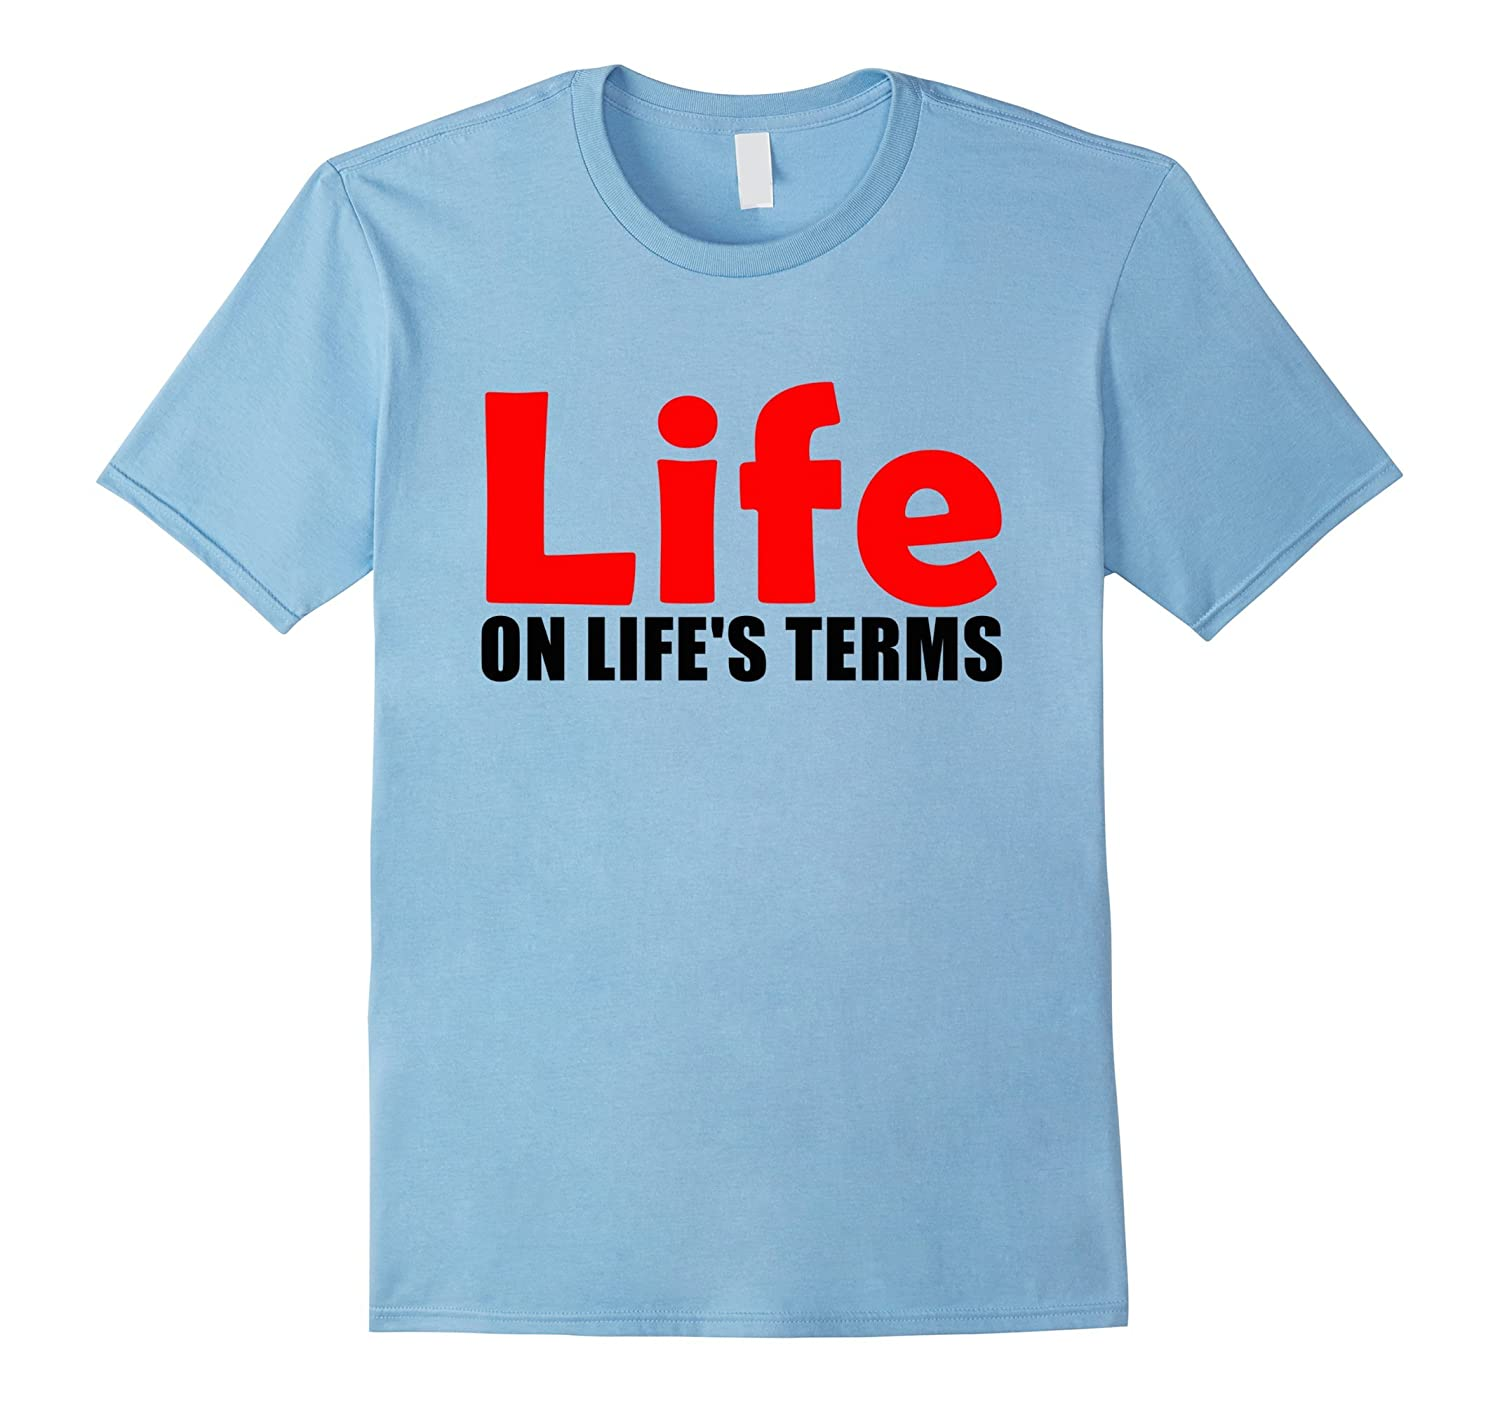 Life on Life's Terms Celebrate Recovery T Shirt Rehab NA AA